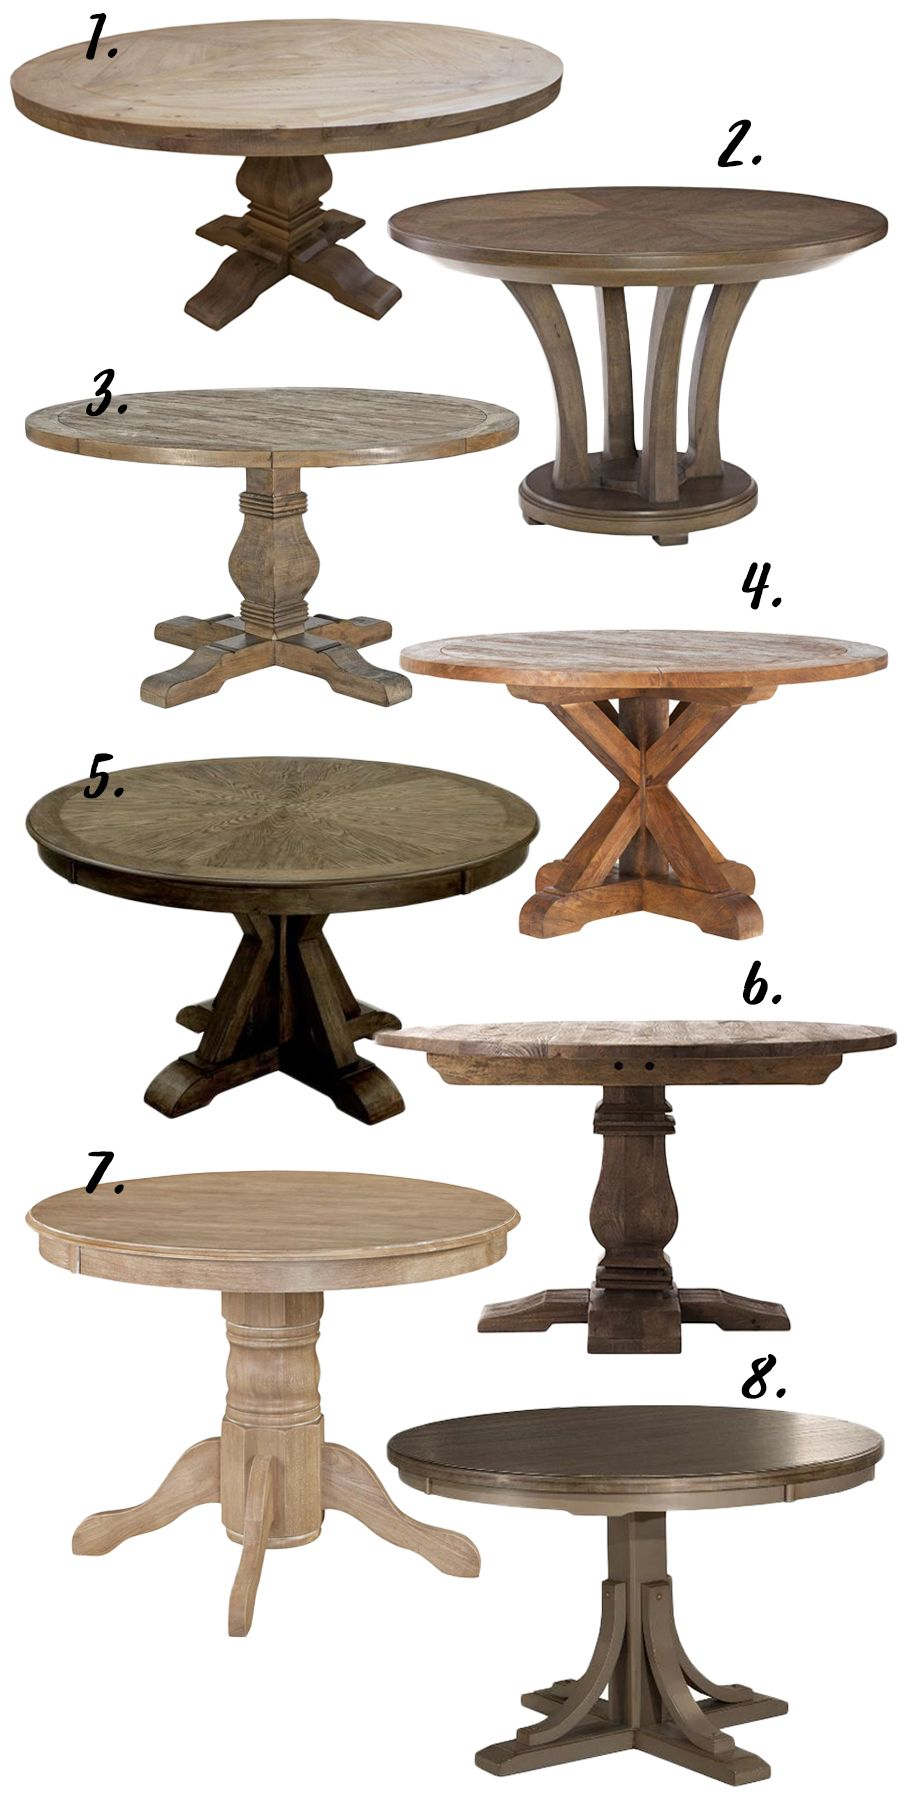 FARMHOUSE DECOR THE RUSTIC ROUND DINING TABLE 8 OPTIONS